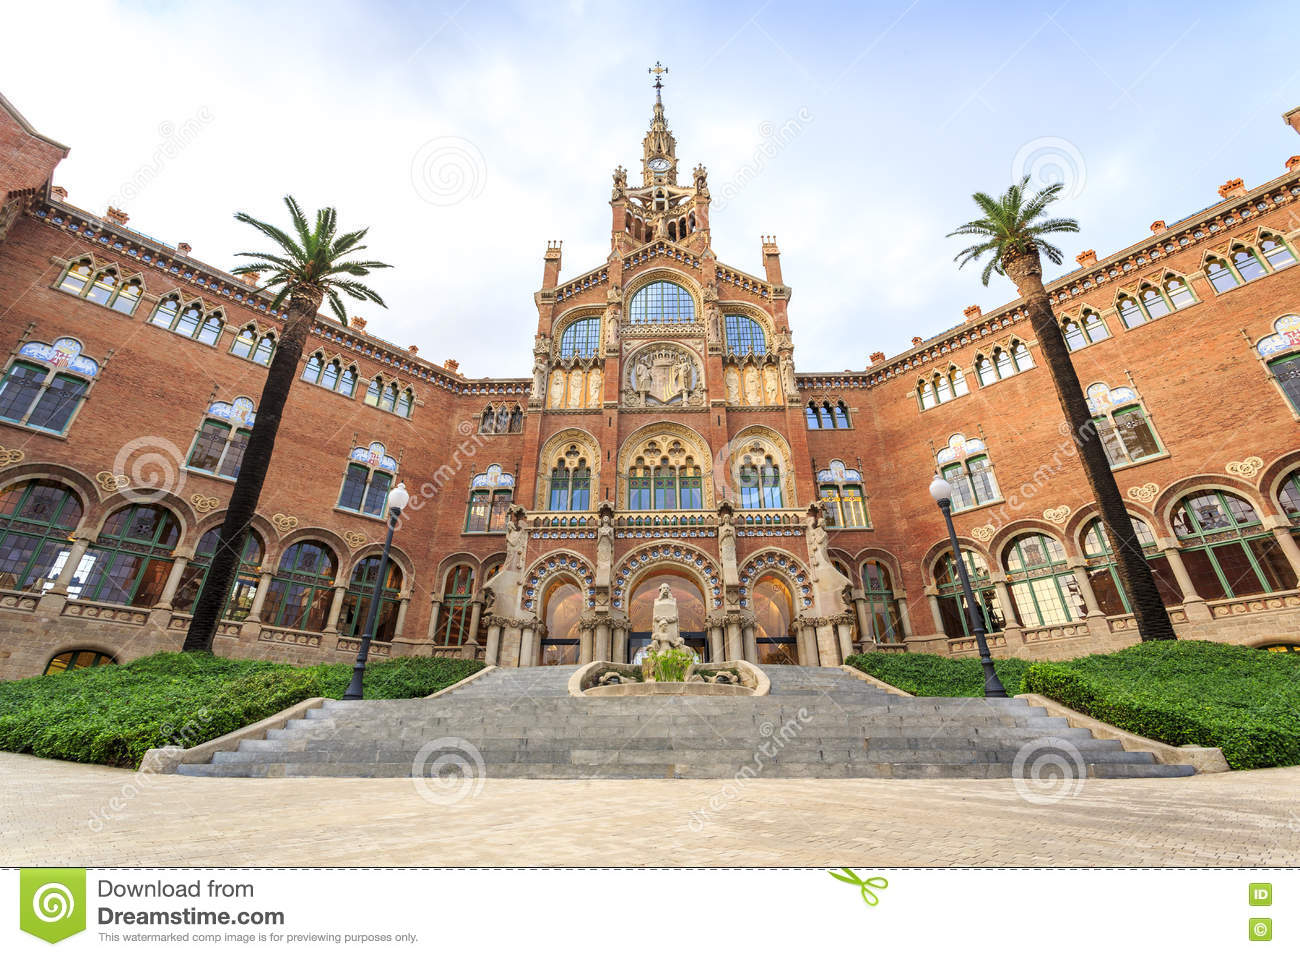 Hospital of the Holy Cross and Saint Paul by A. Gaudi, Barcelona